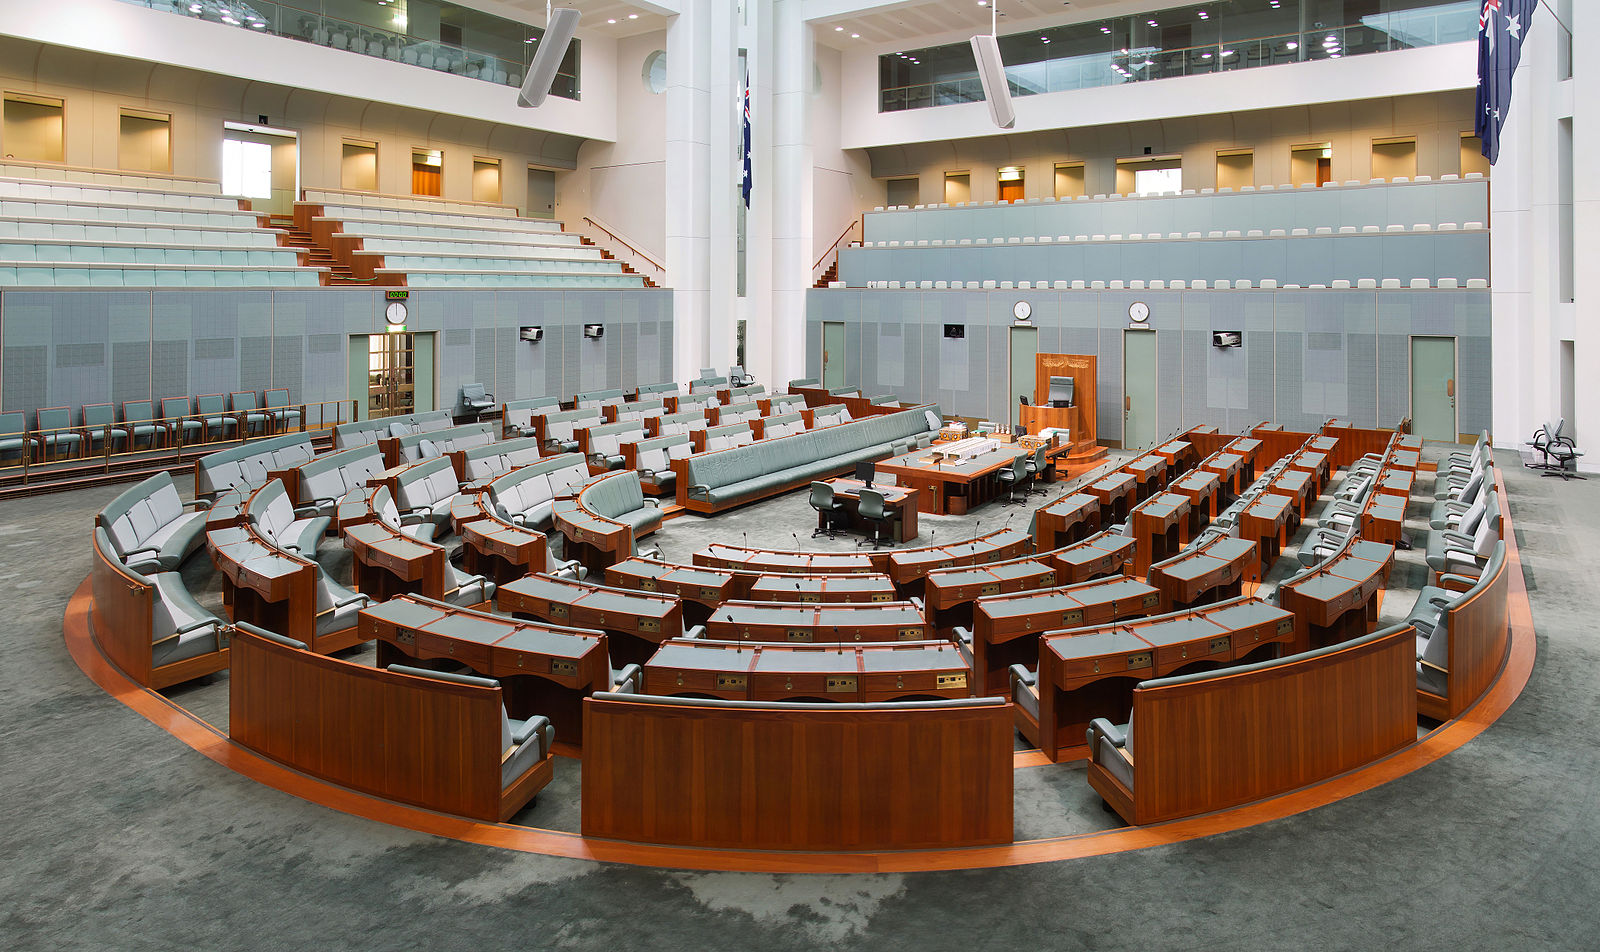 Australia House of Representatives